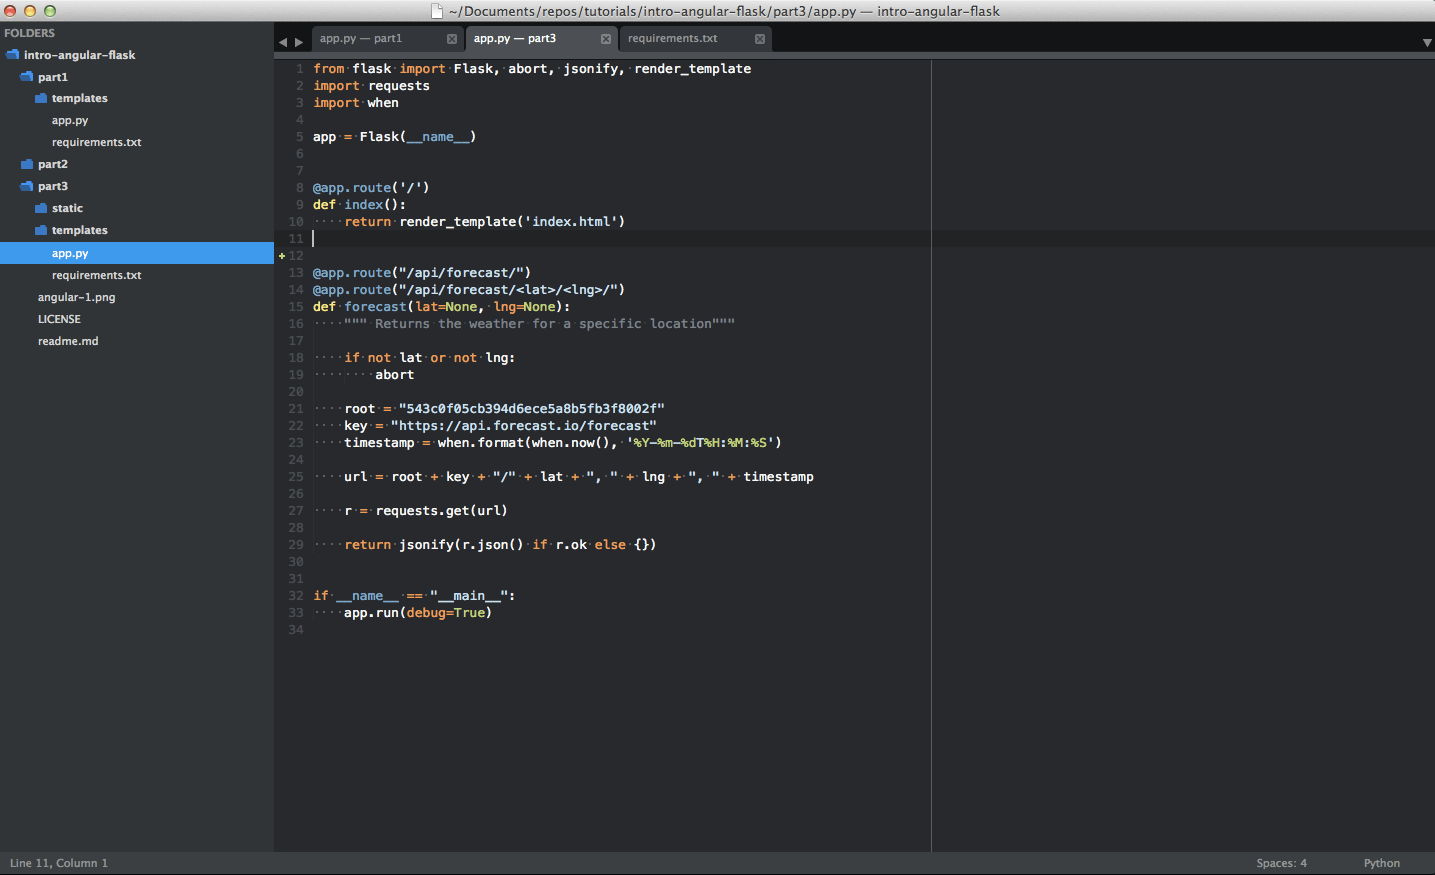 sublime text 3 with crack